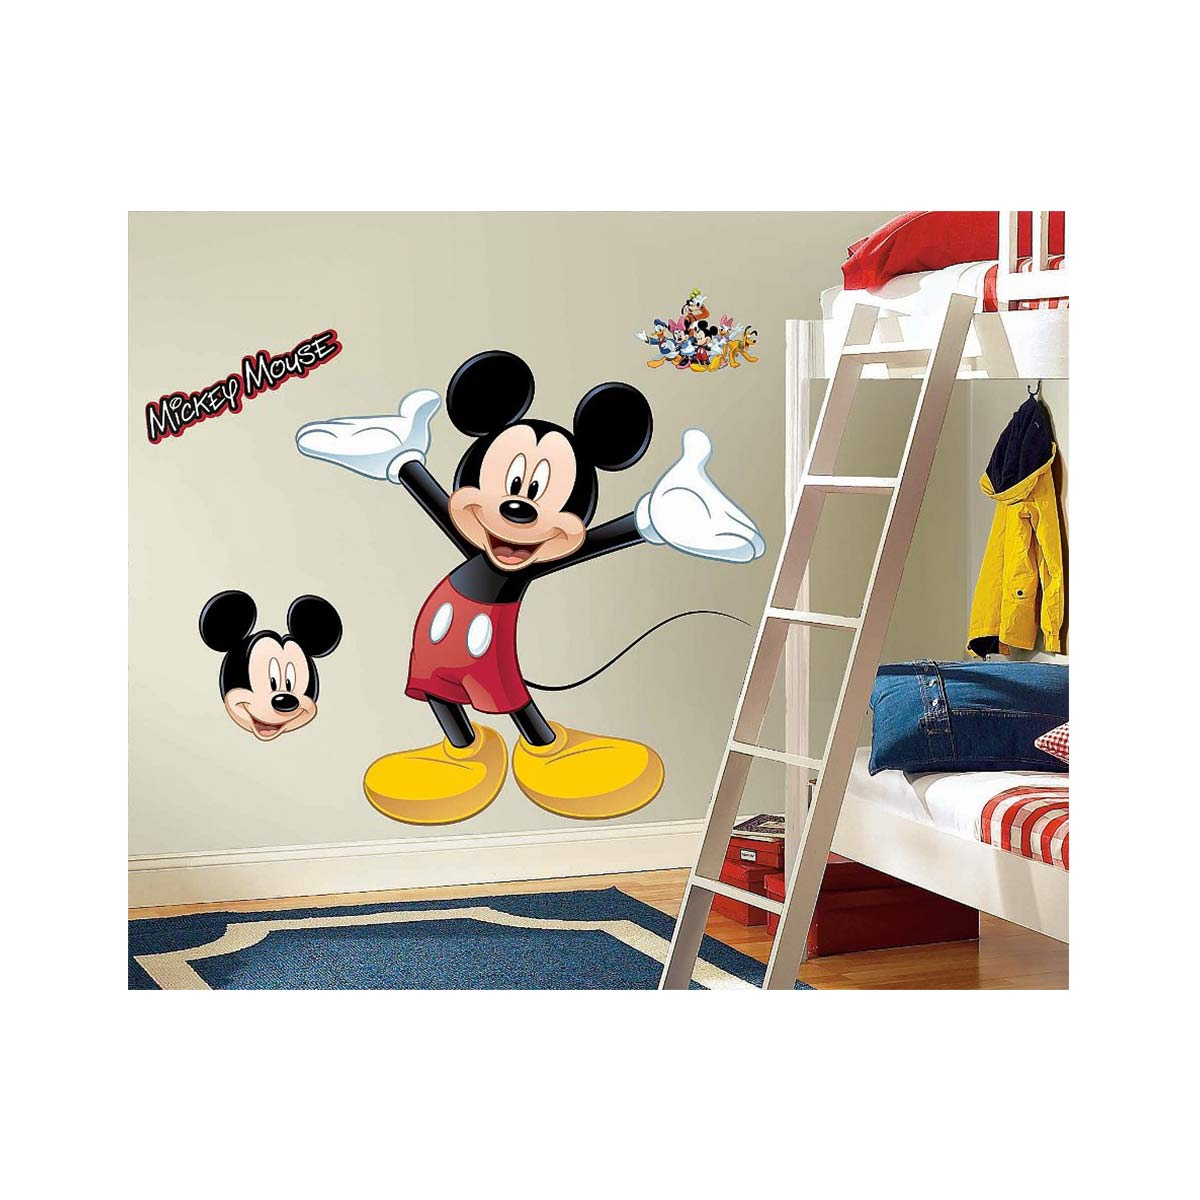 Acomes Wall Sticker Kids Room Disney Kids Mickey Mouse Interior